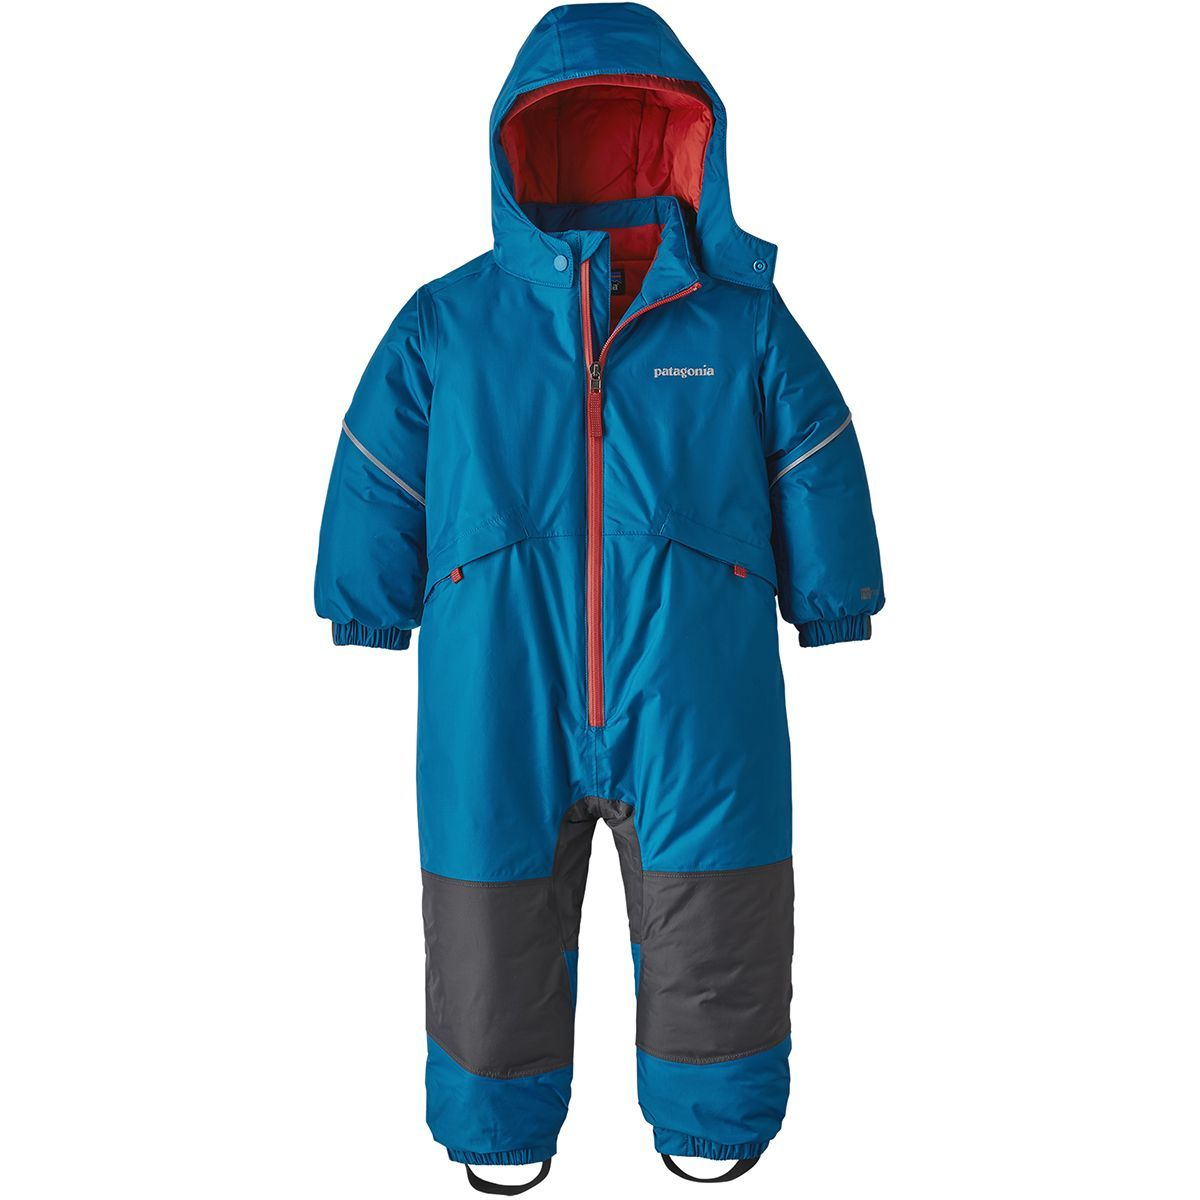 Patagonia Baby Snow Pile One Piece Snow Suit Infant Boys